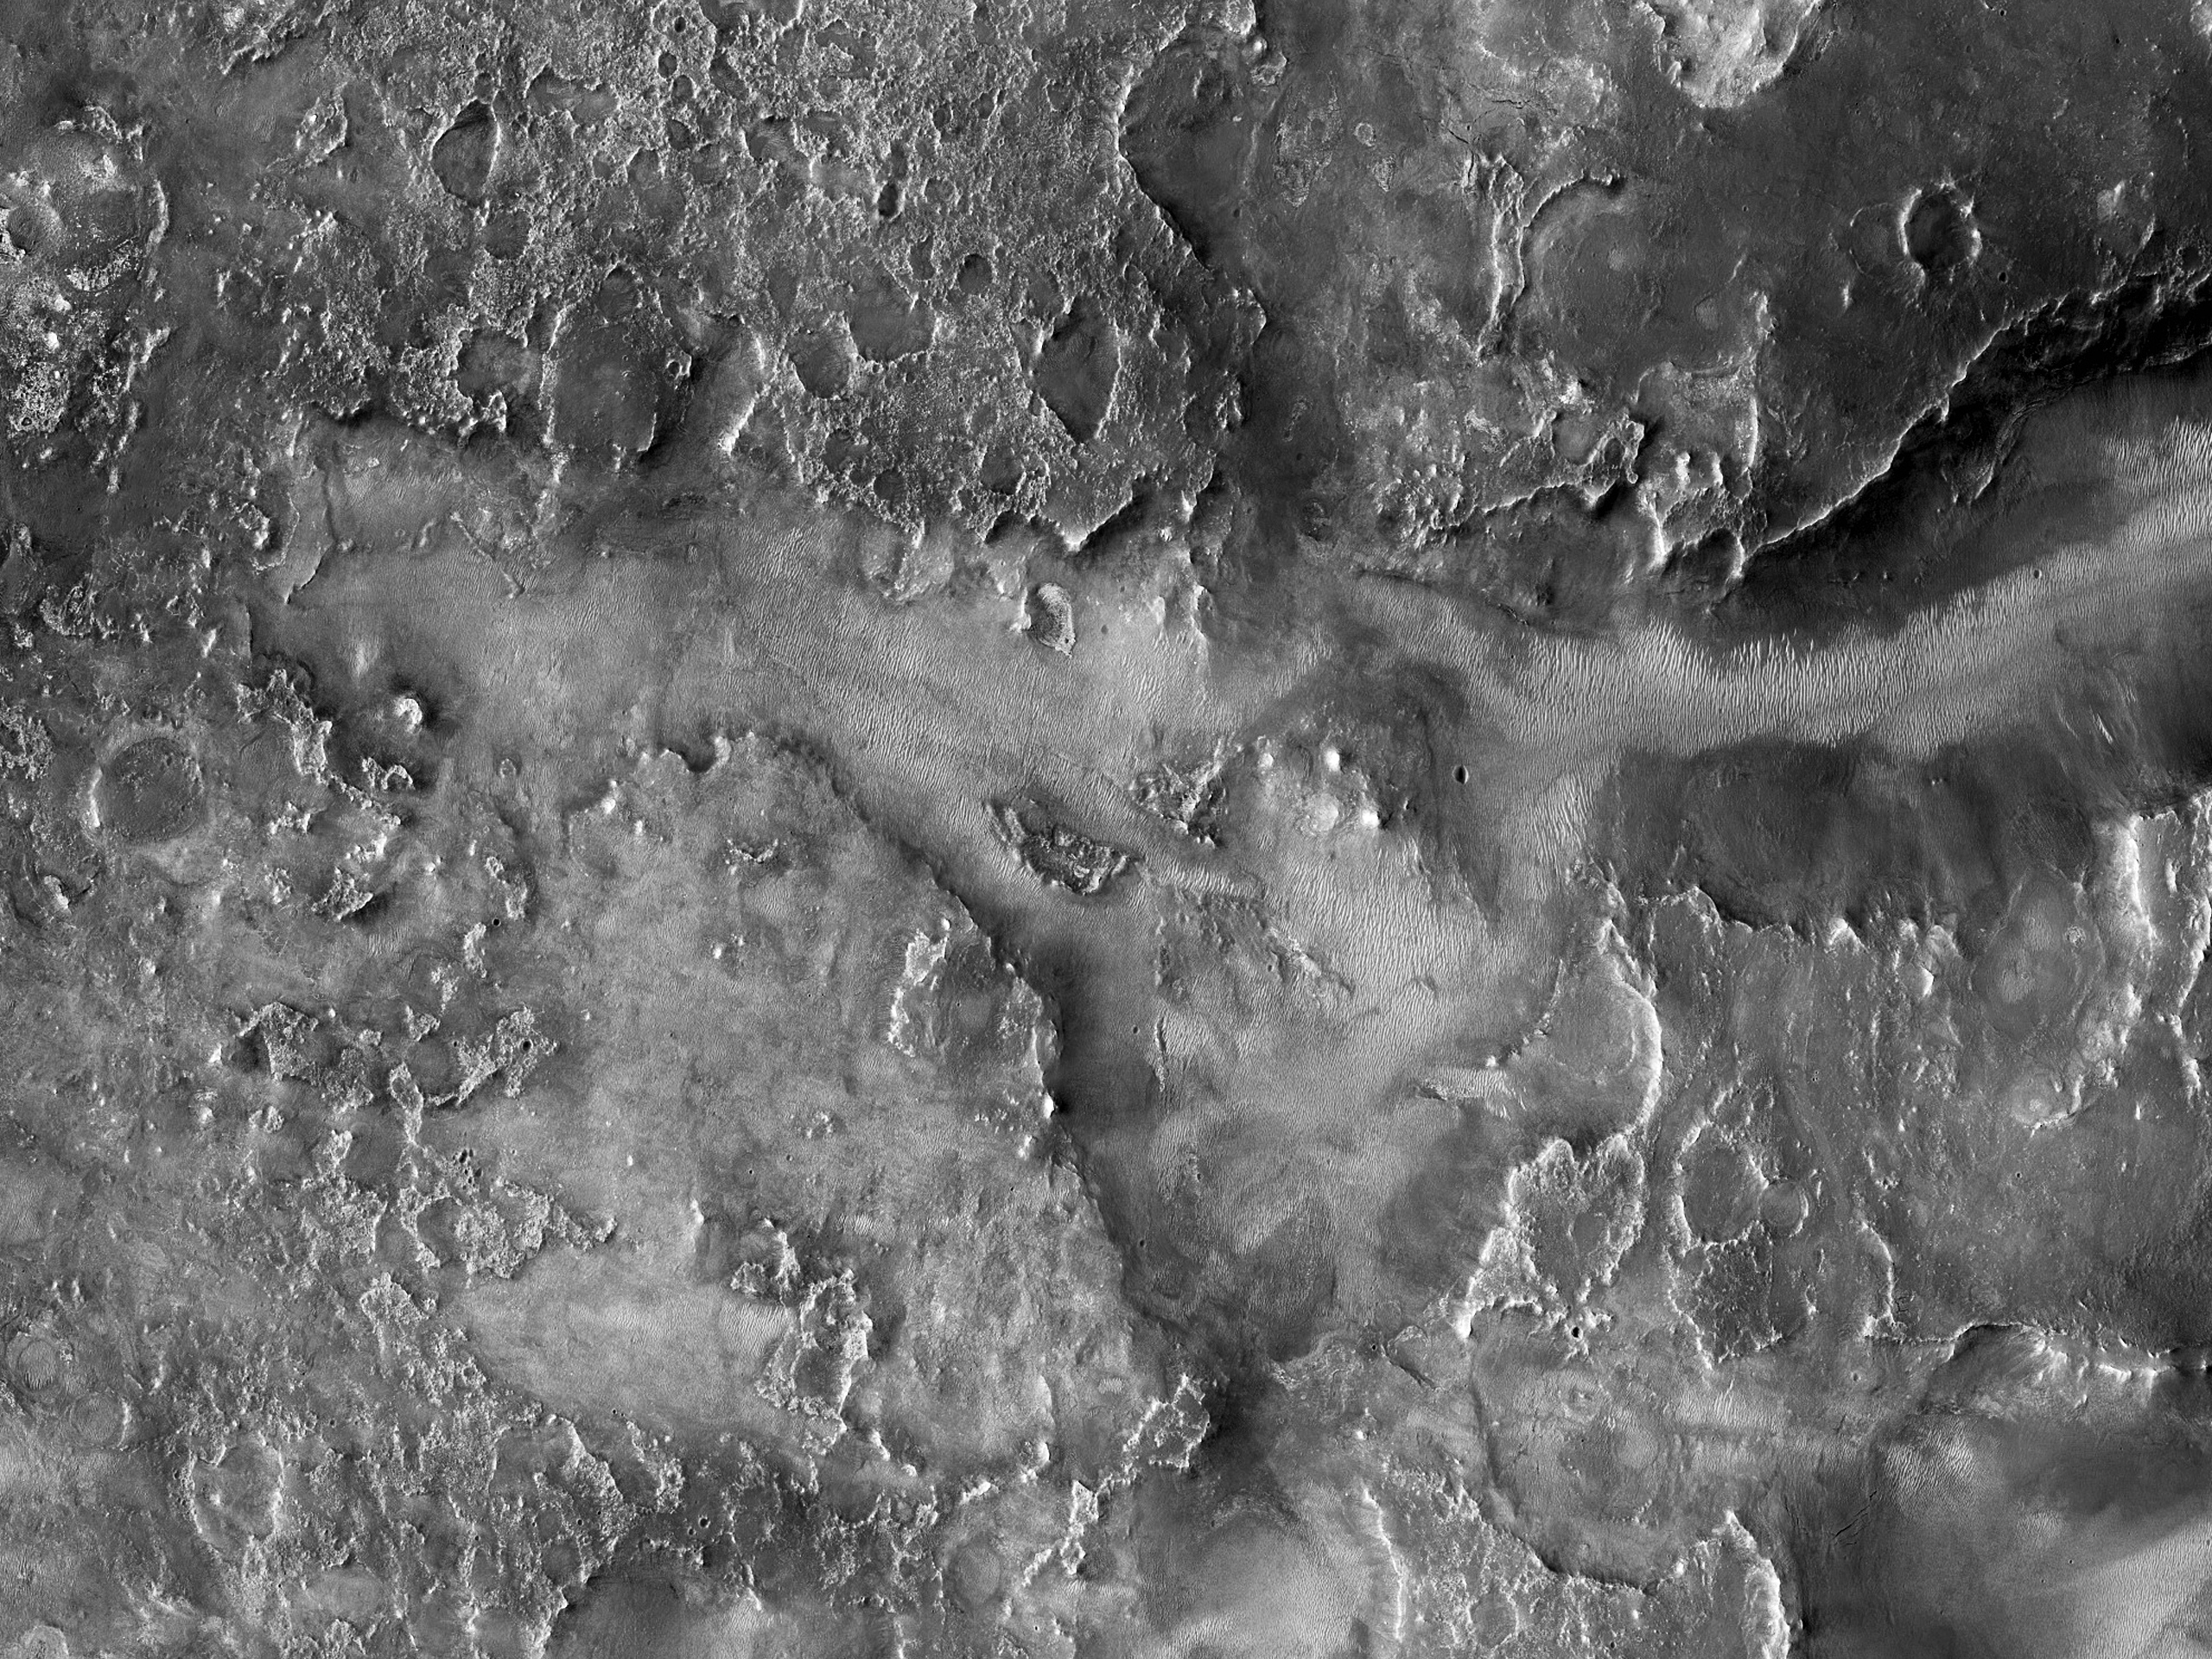 A Channel Upstream of Jezero Crater